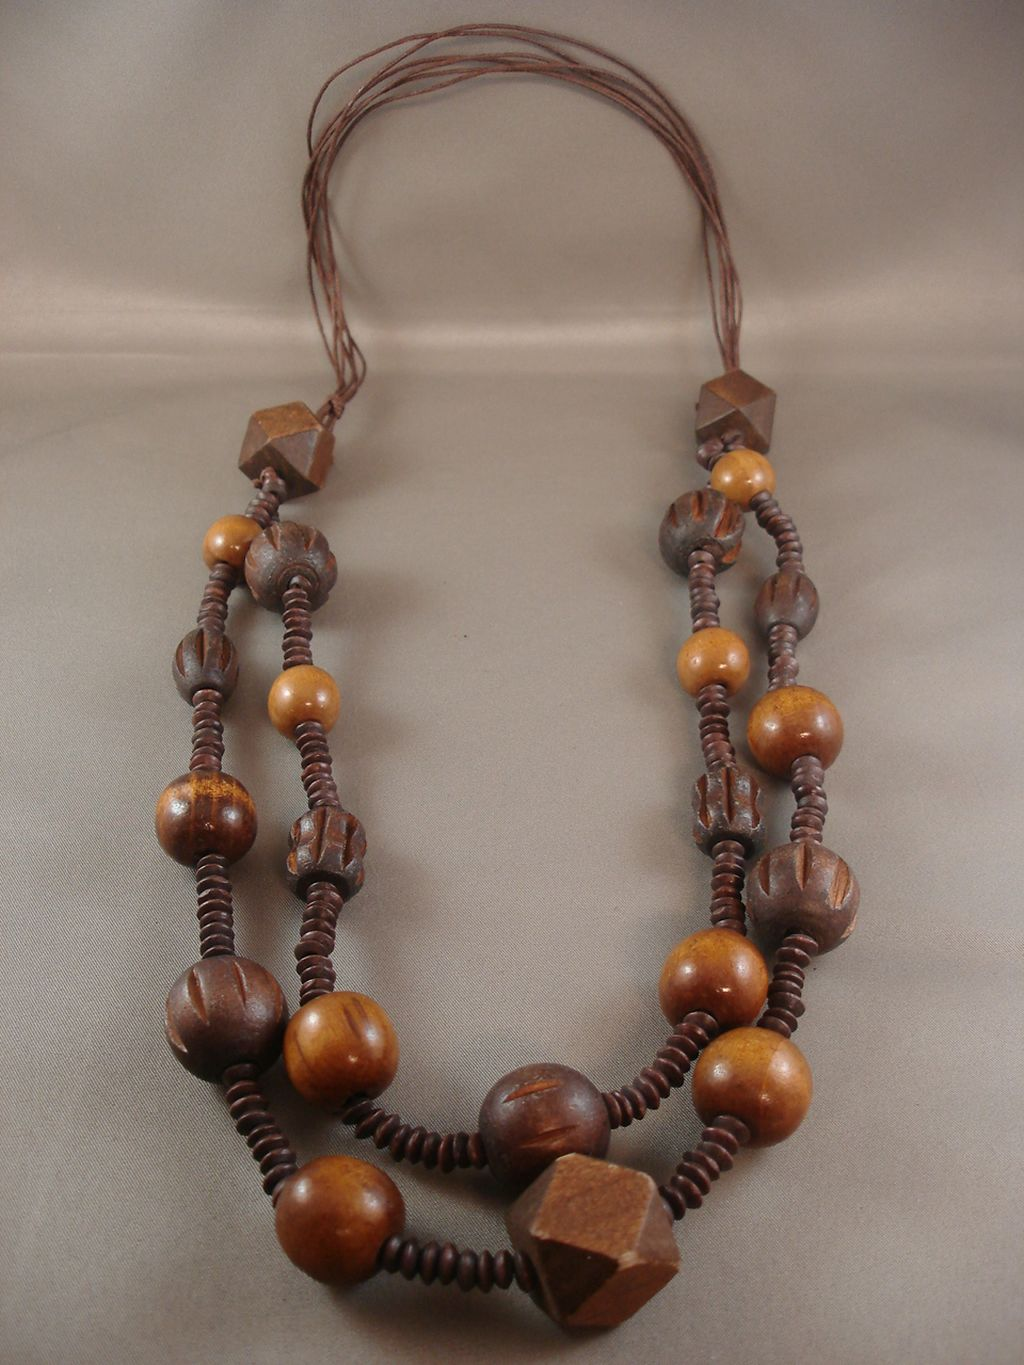 "32"" Adjustable Brown Bulky Two Layers Necklace, Large Wooden Ball & Cube Beads, European Fashion Jewelry"